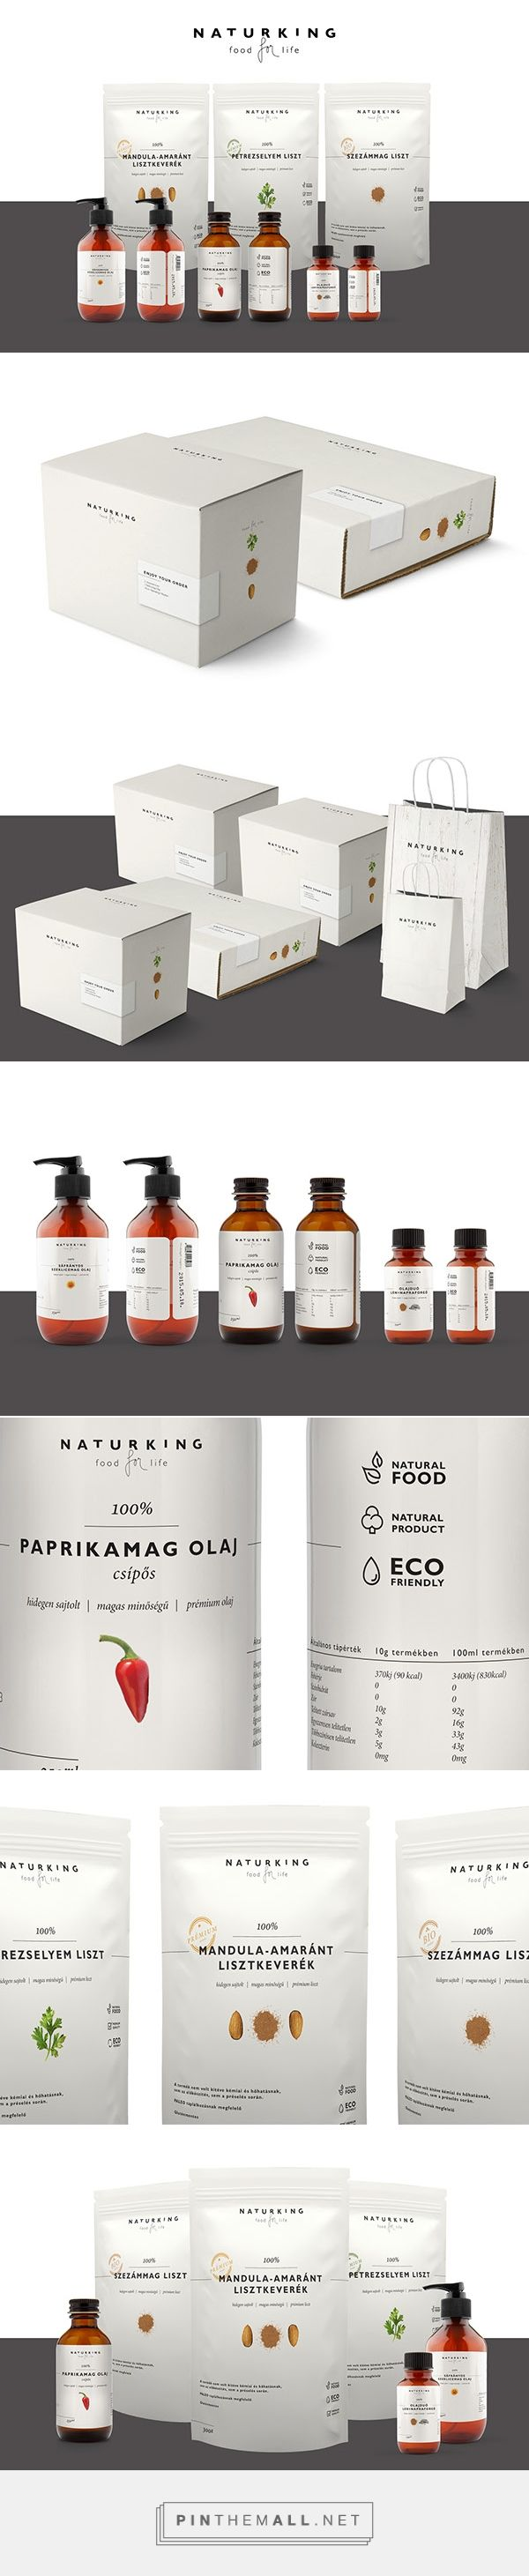 N A T U R K I N G on Behance by Demeces Fanni curated by Packaging Diva PD. This identity packaging concept was made for VITAKING supplements company for new quality food products in Hungary.